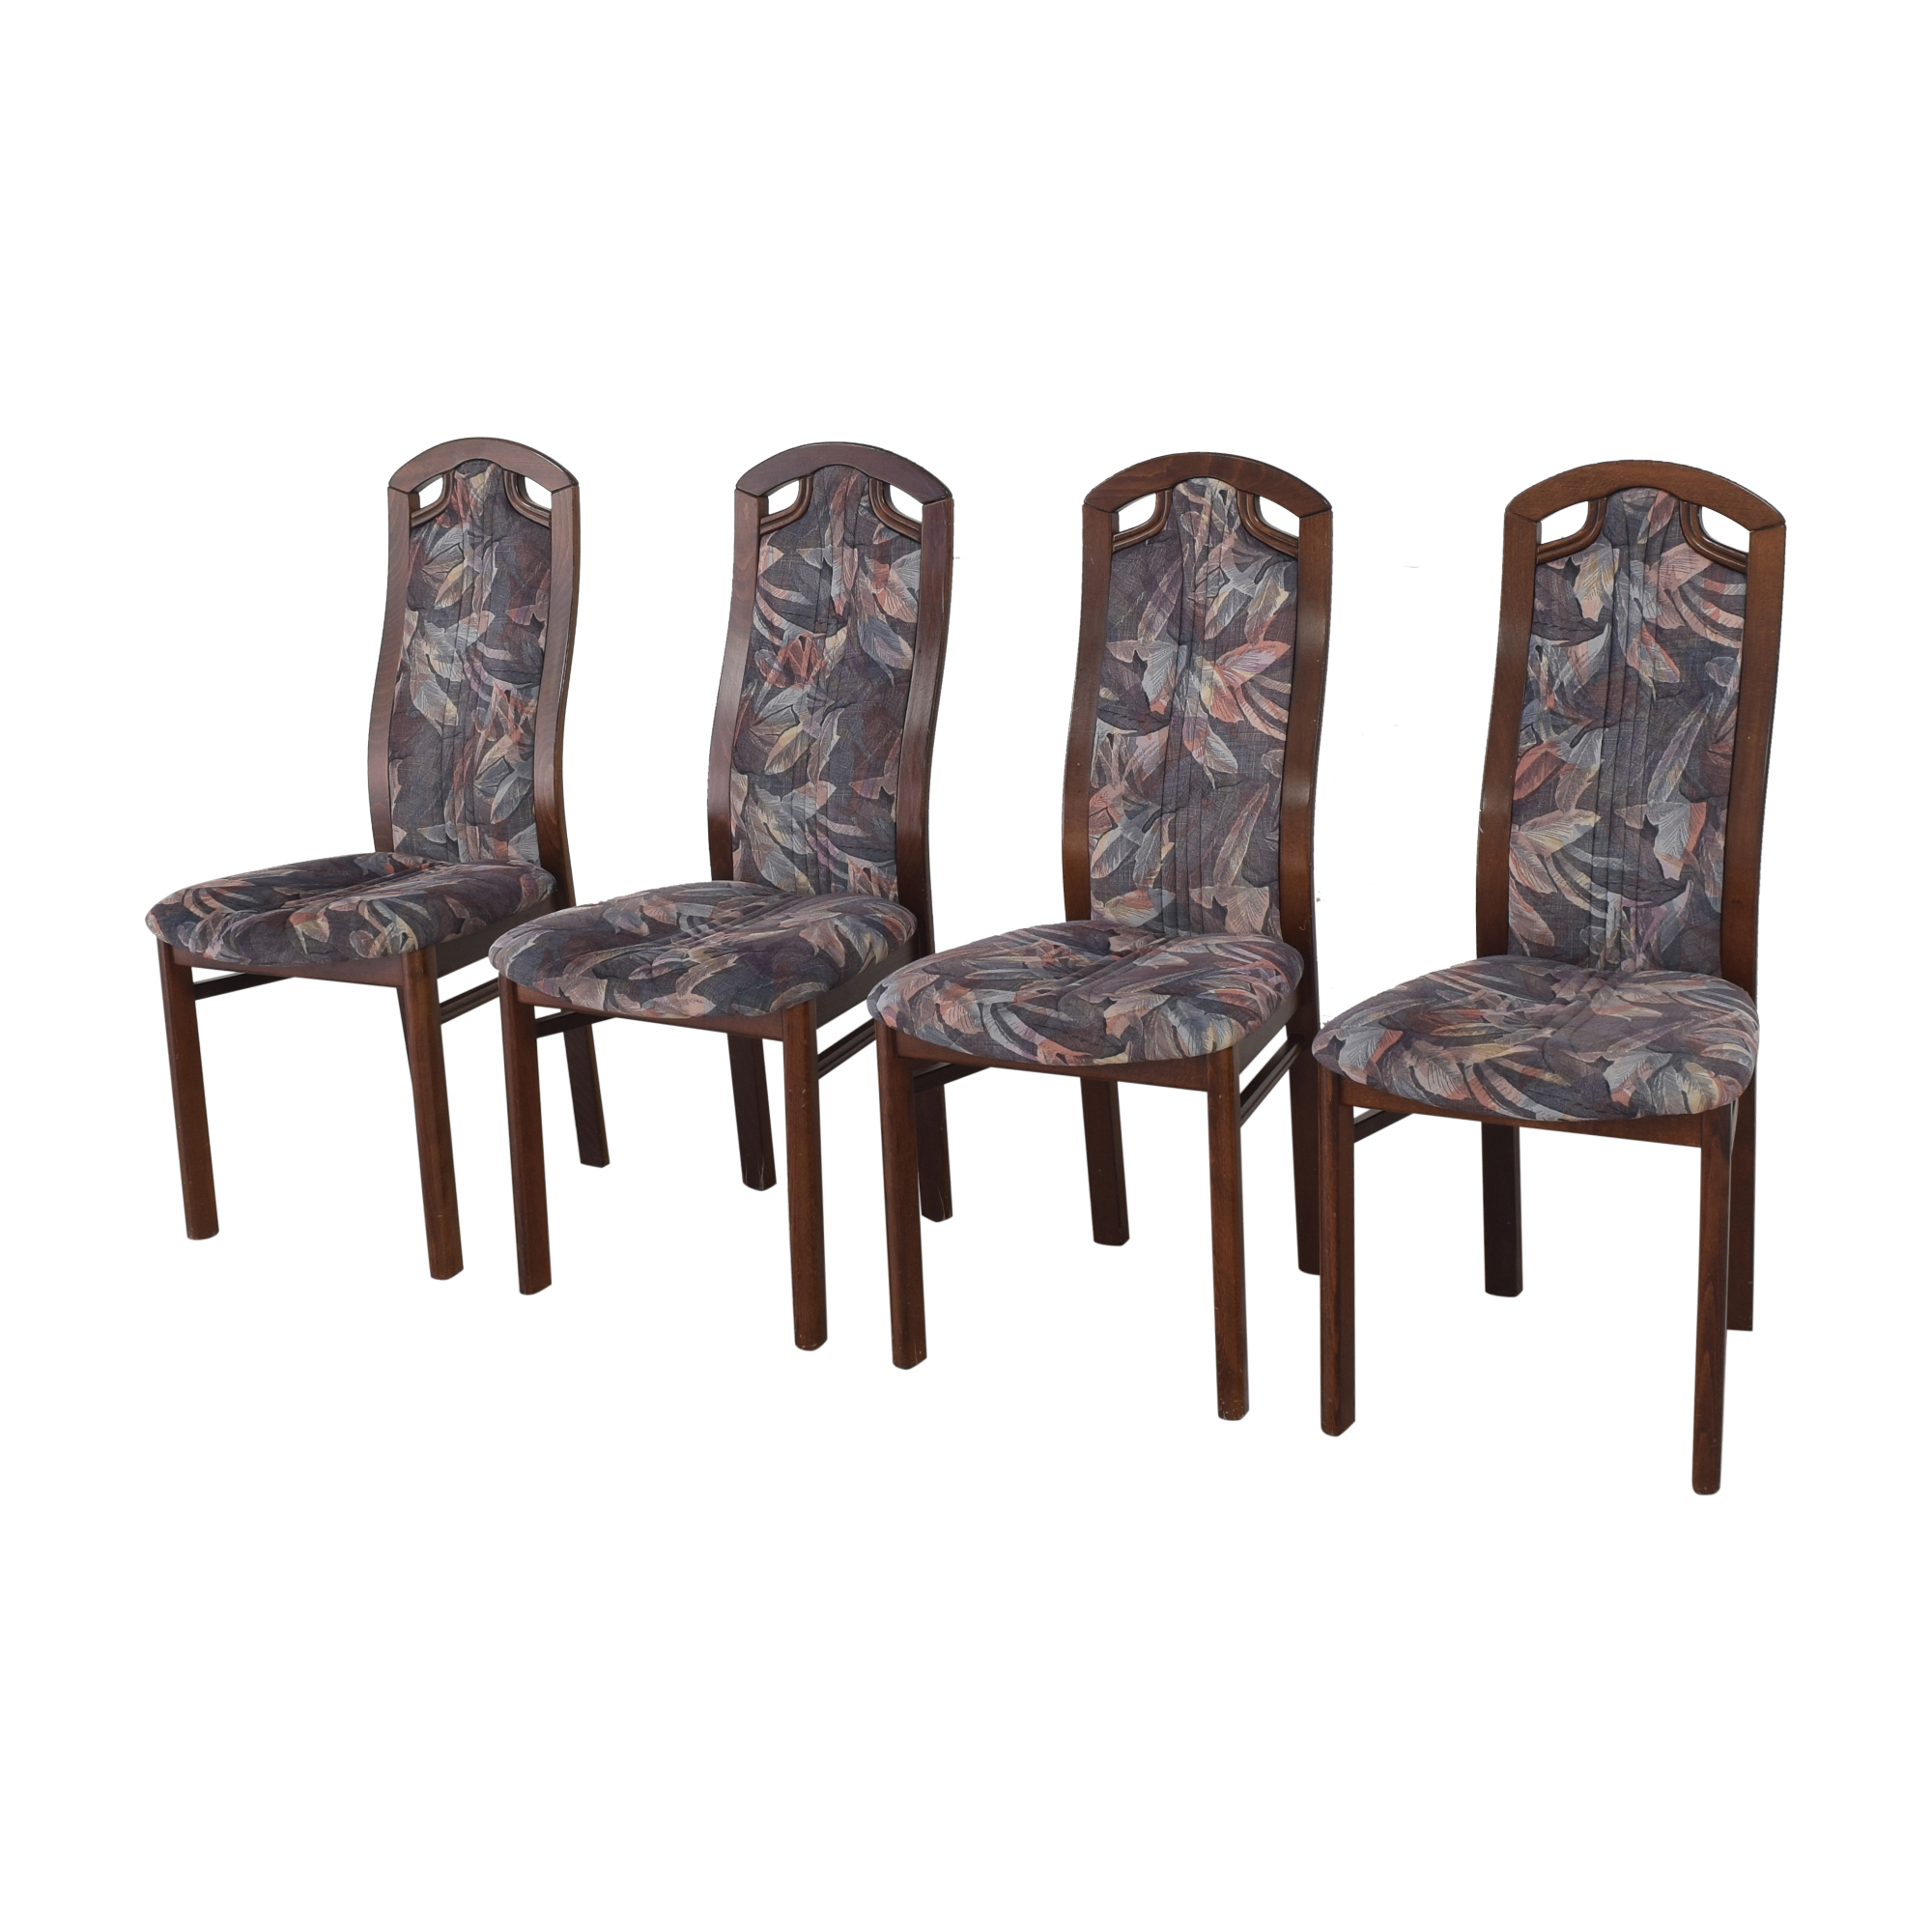 Benze Collection Benze Collection High Back Dining Chairs ma